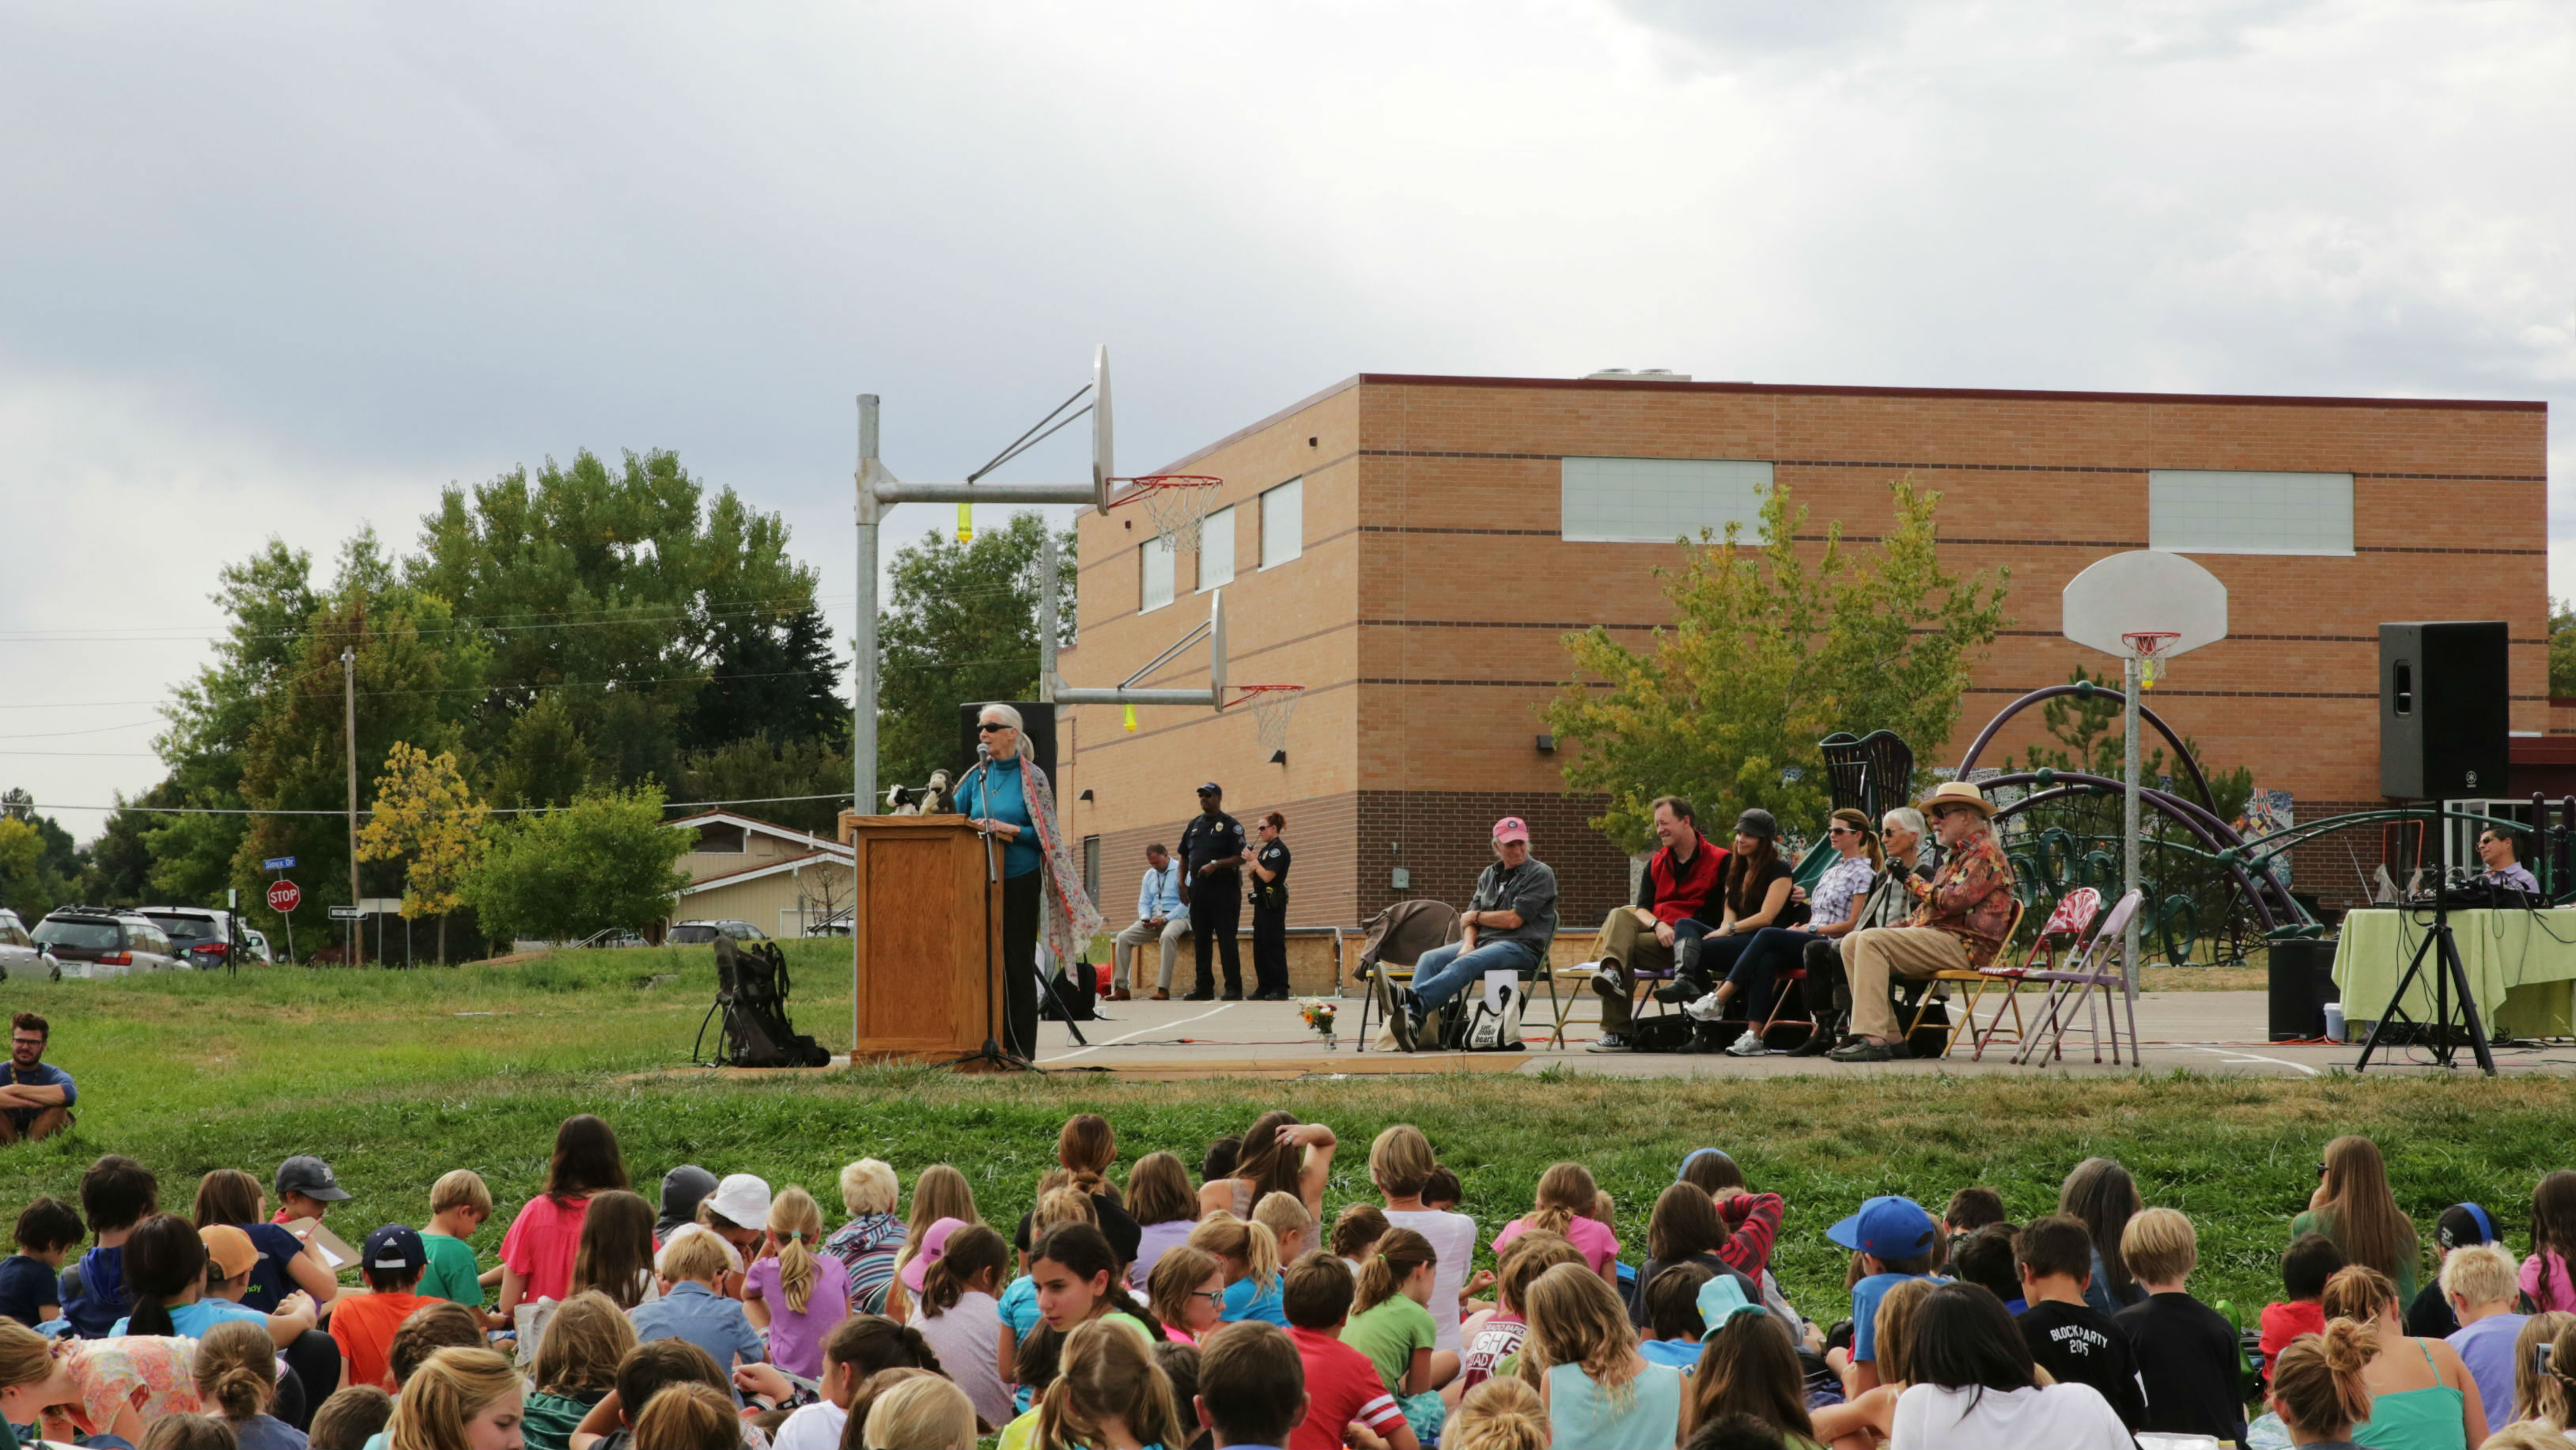 Photo: Jane Goodall at Roots and Shoots event in Boulder